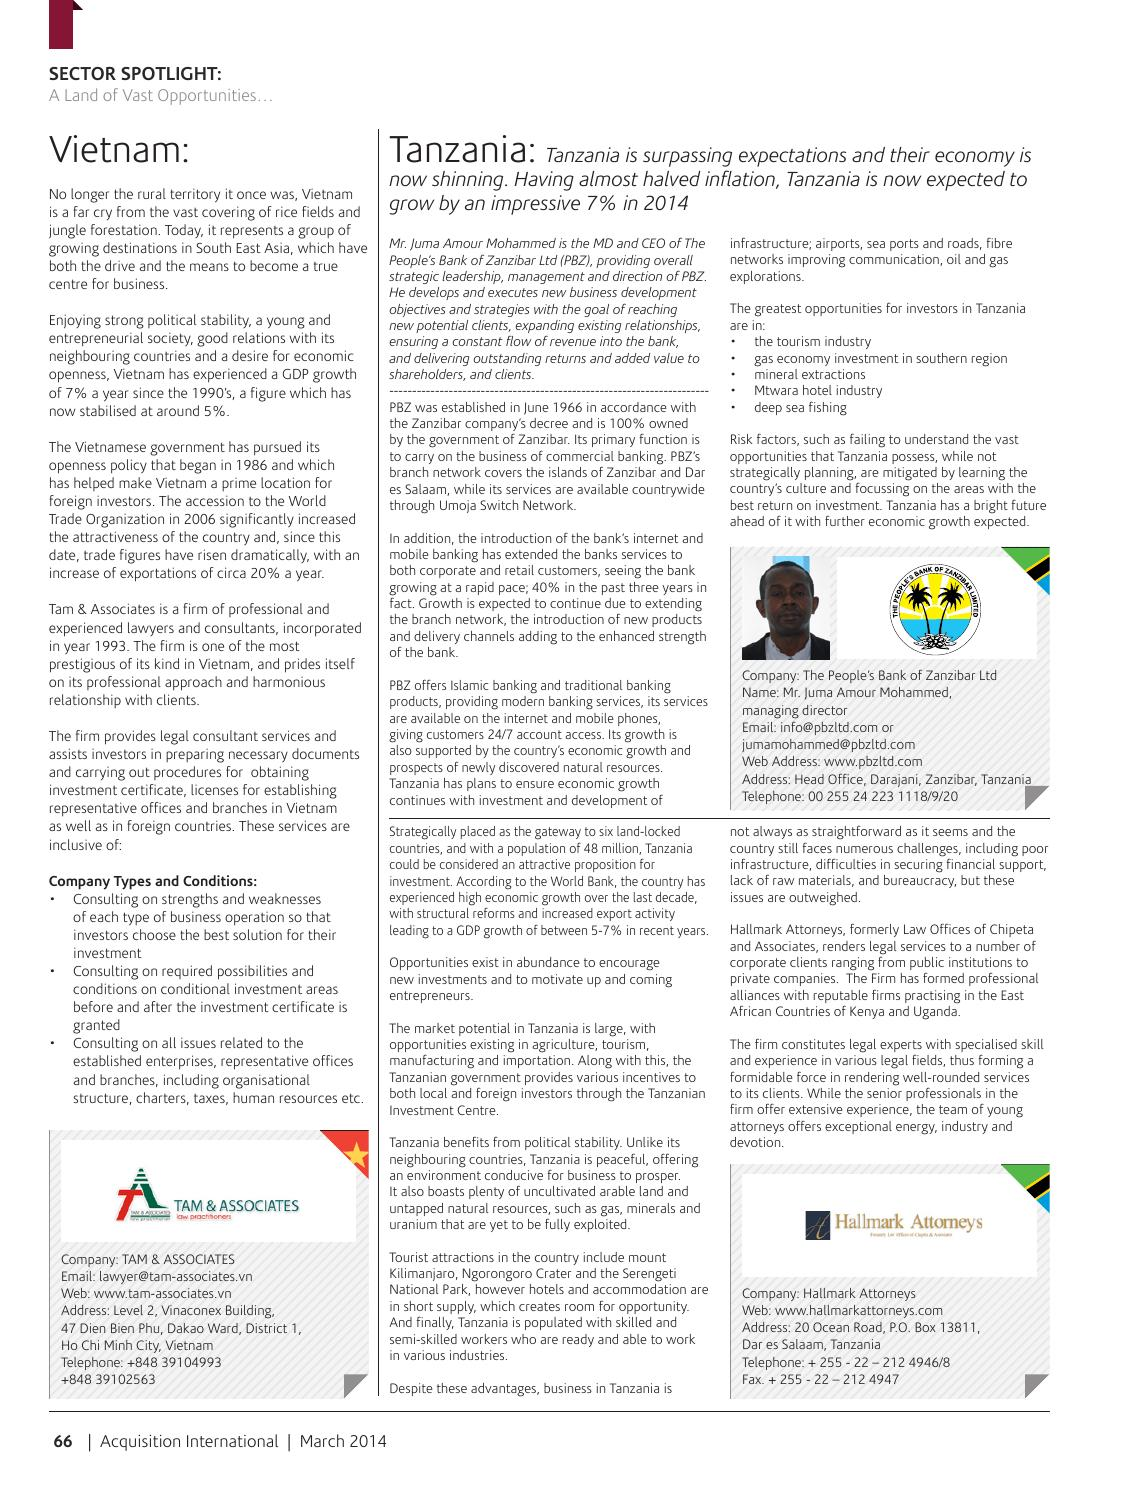 Acquisition International March 2014 by AI Global Media - issuu